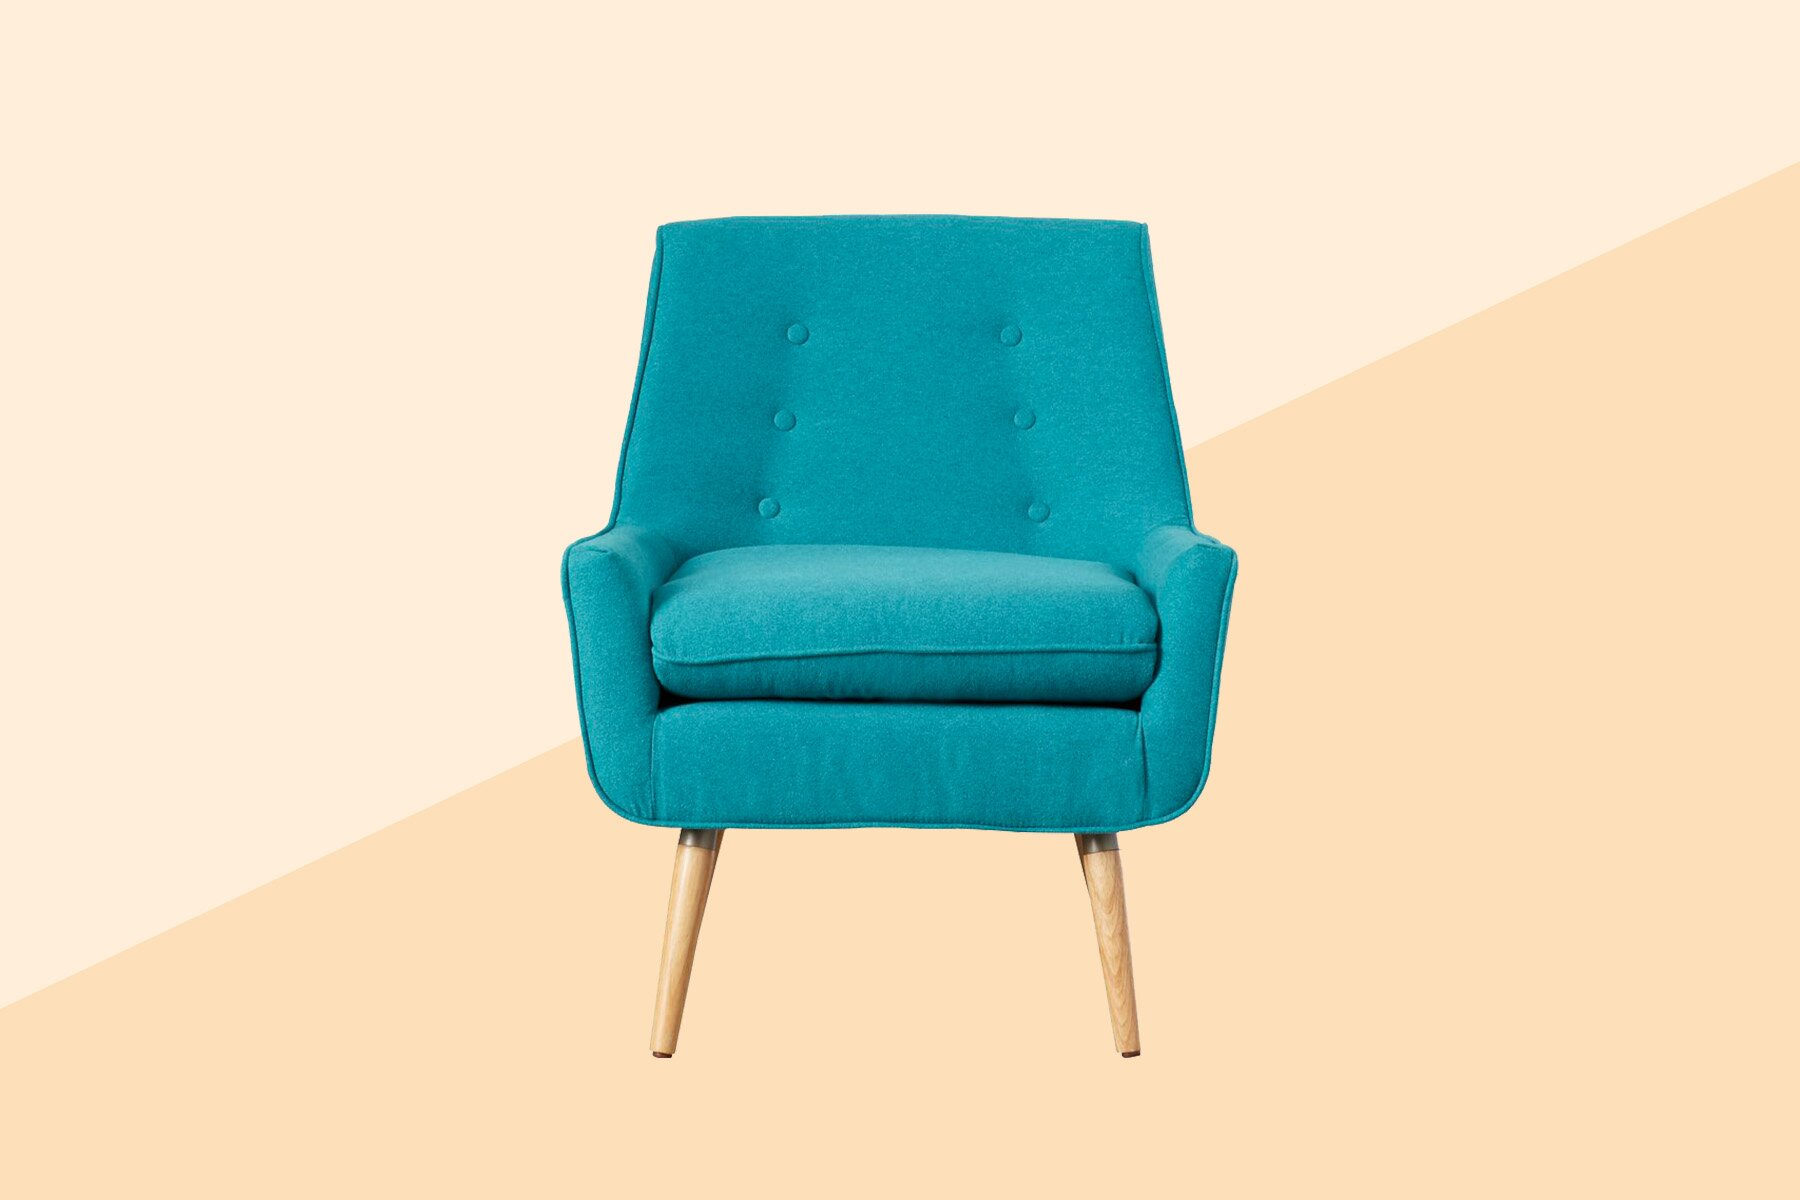 Wayfair Sales 2019 And Best Selling Wayfair Products To Shop Real Simple